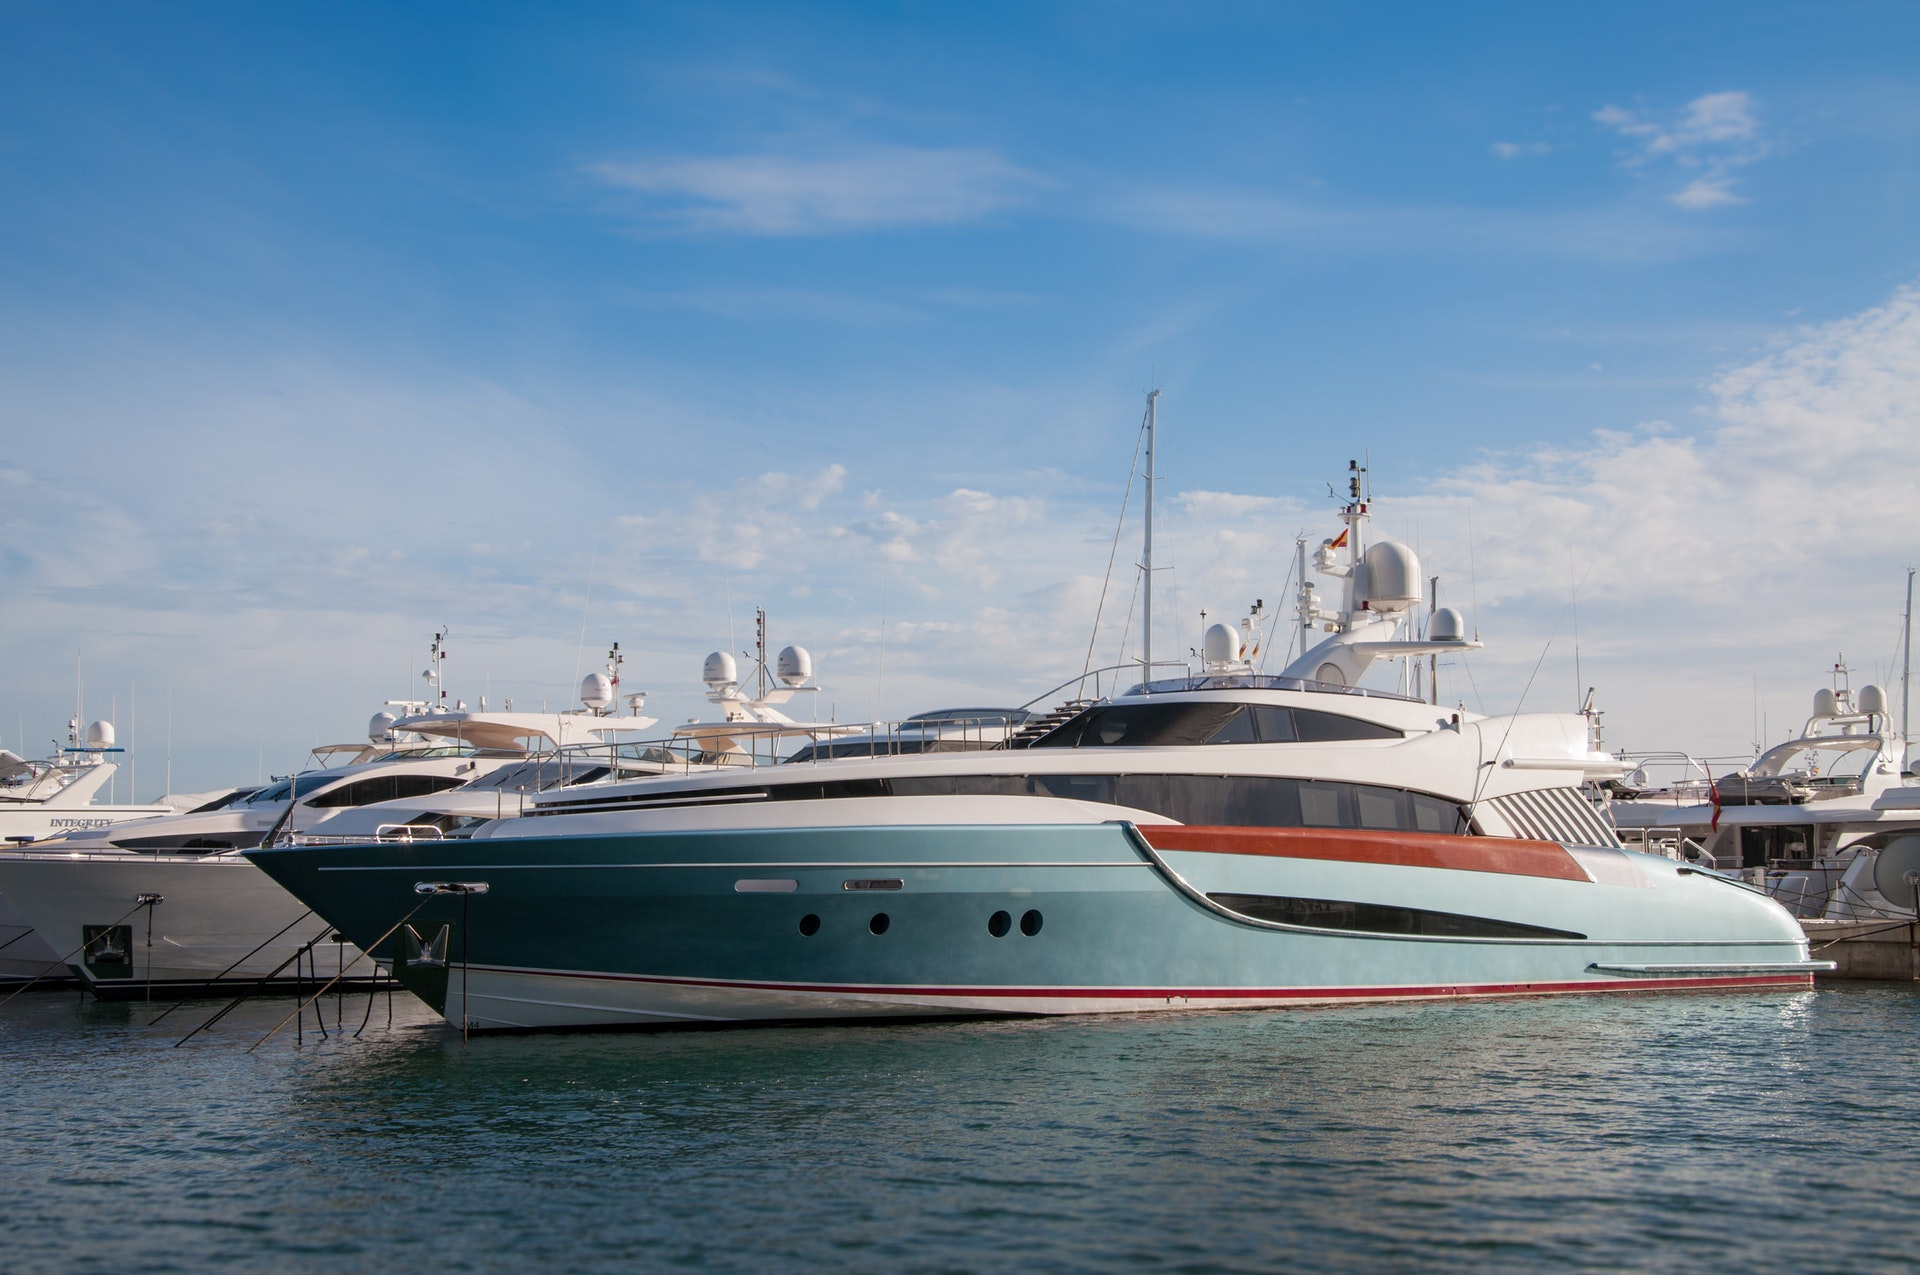 Yachts with departures from the port of Palma or Alcudia